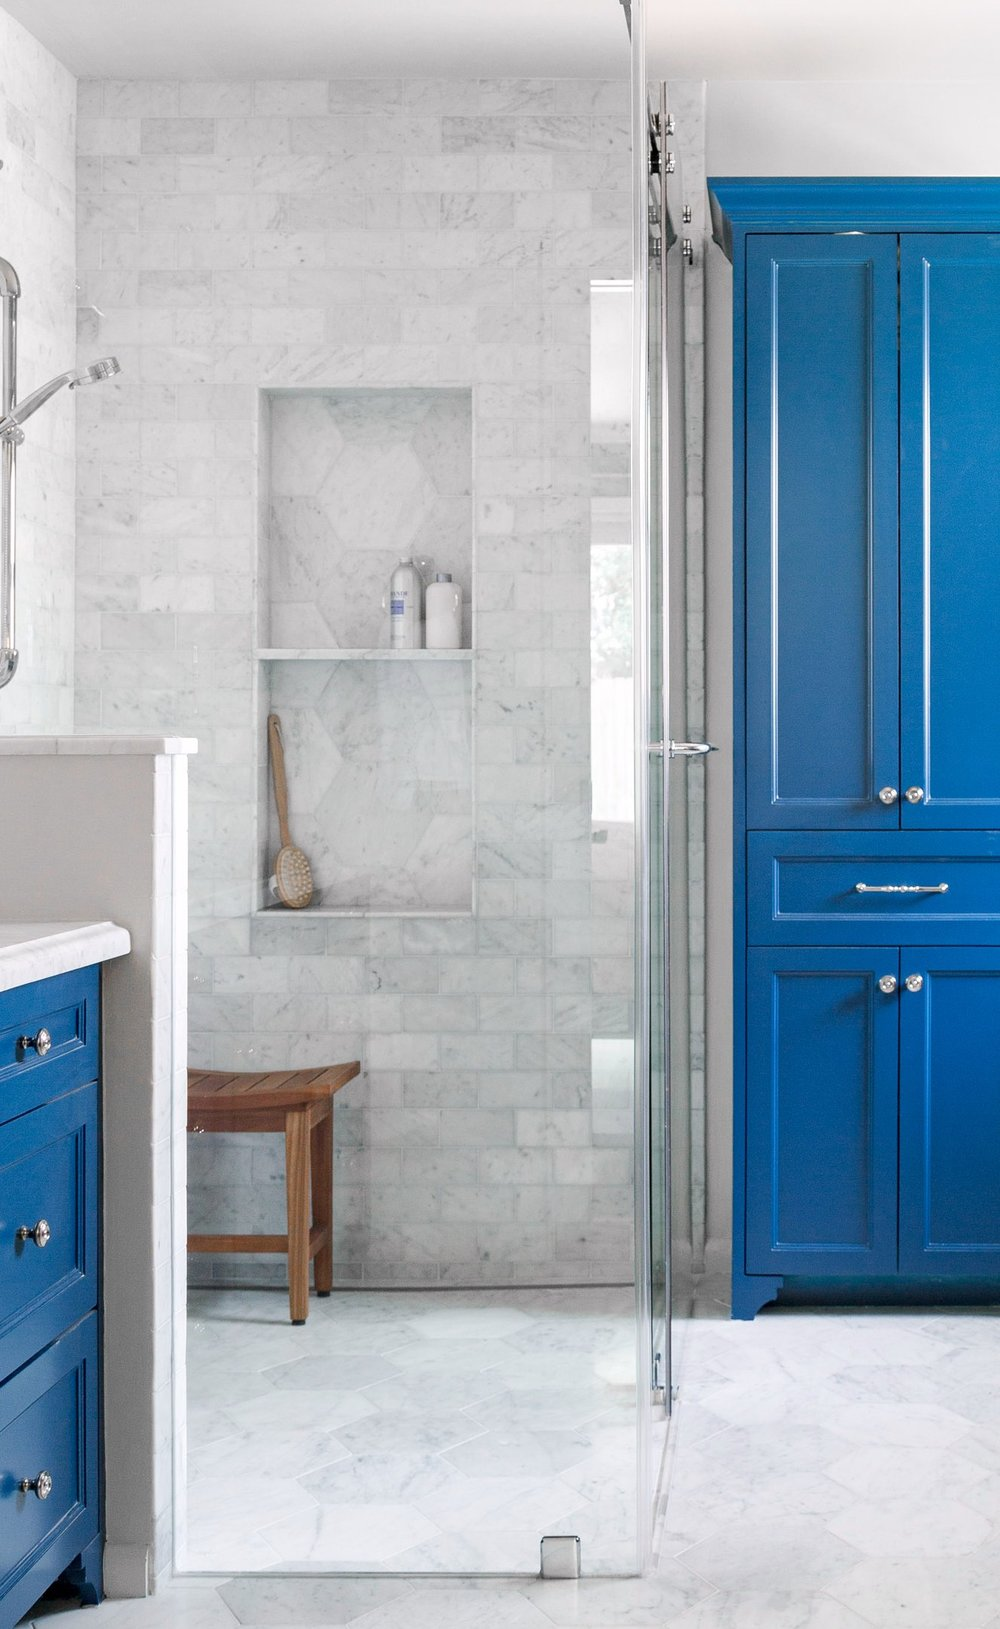 SEE THE FULL REMODEL: Before and After: A Boutique Hotel Inspired Master Bath Remodel| Photographer: Tori Aston